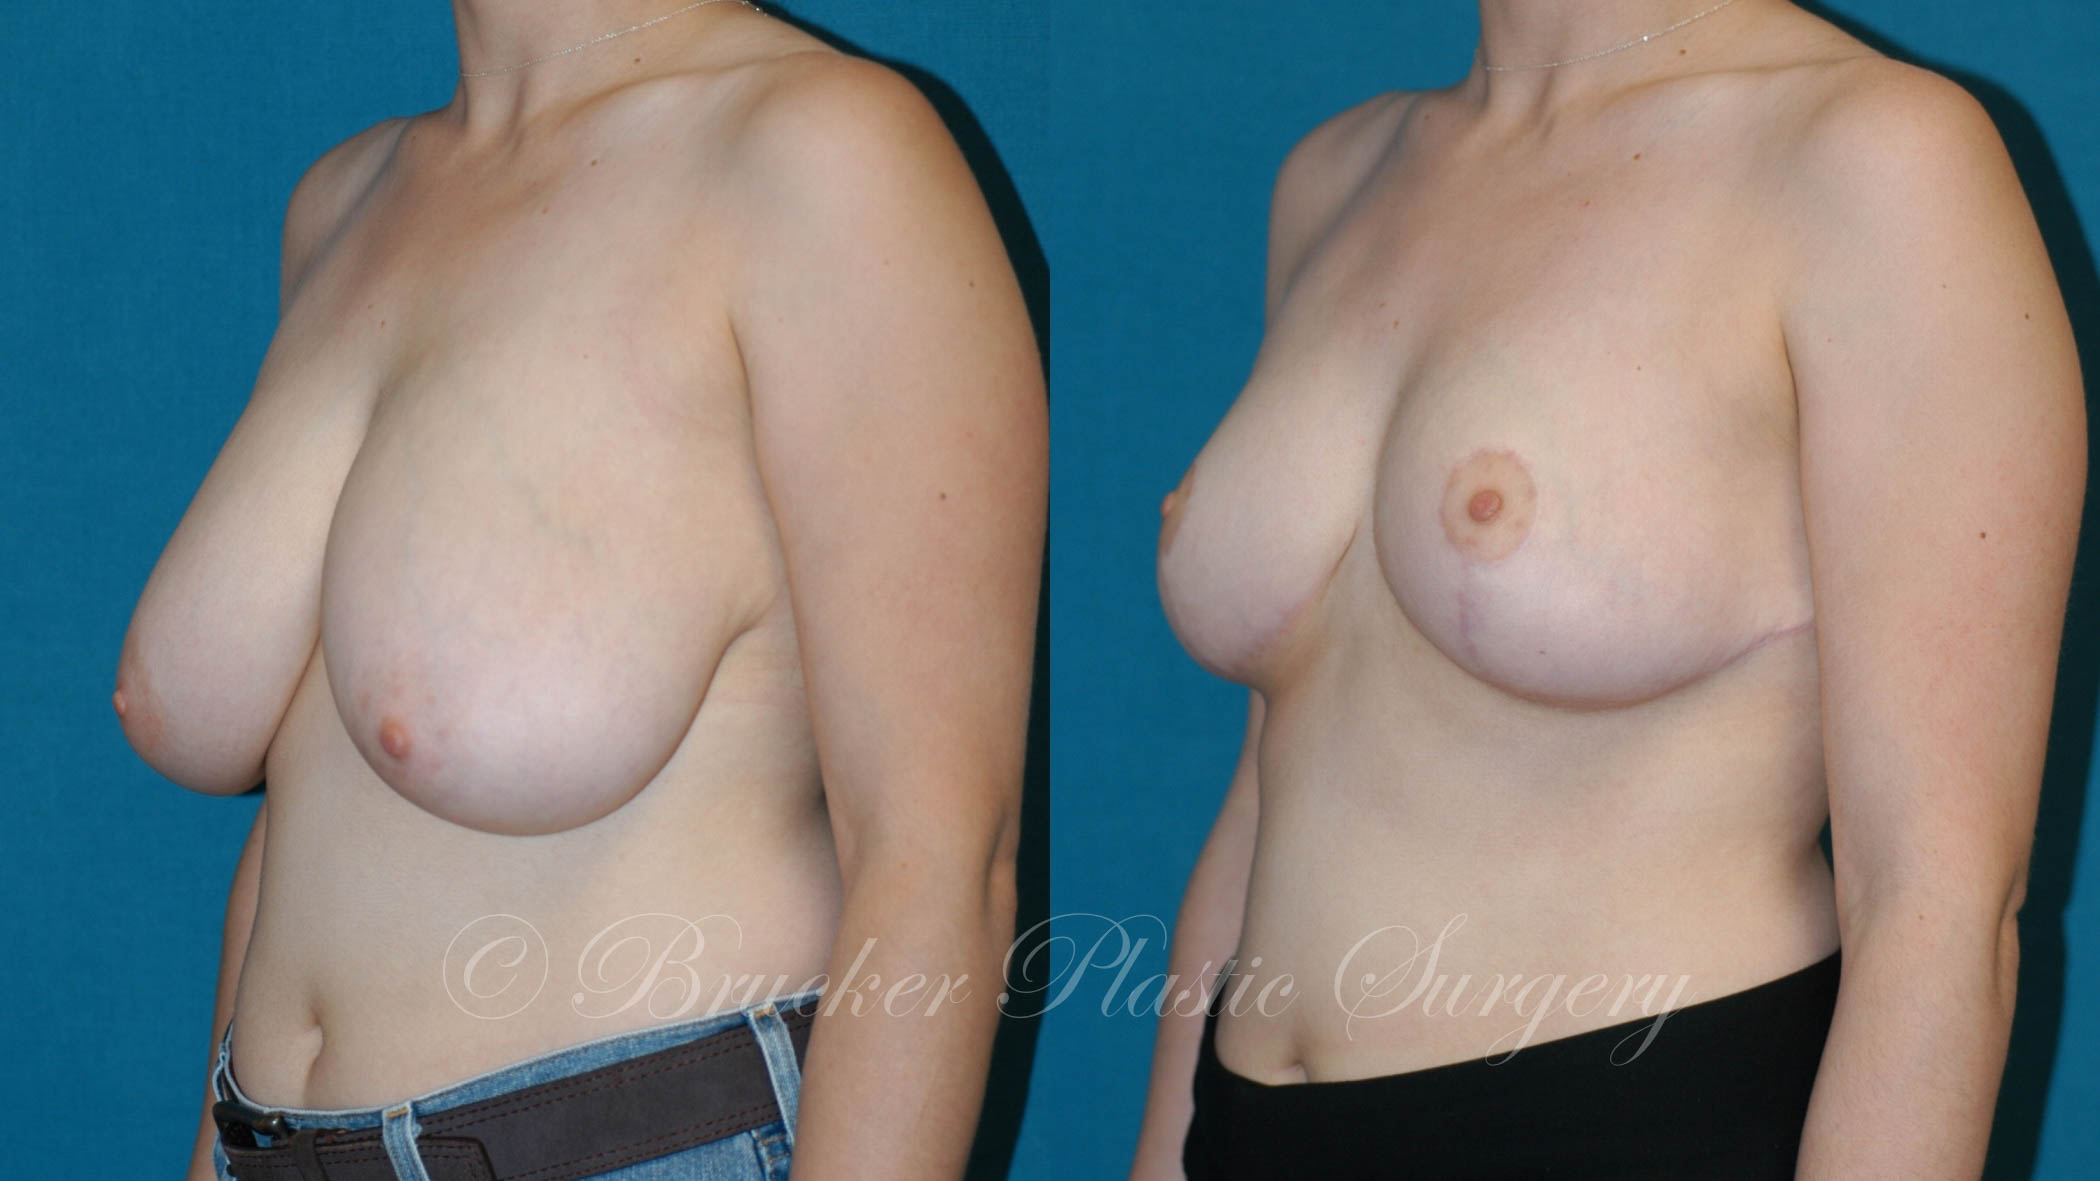 Breast Reduction Del Mar Patient 1.1